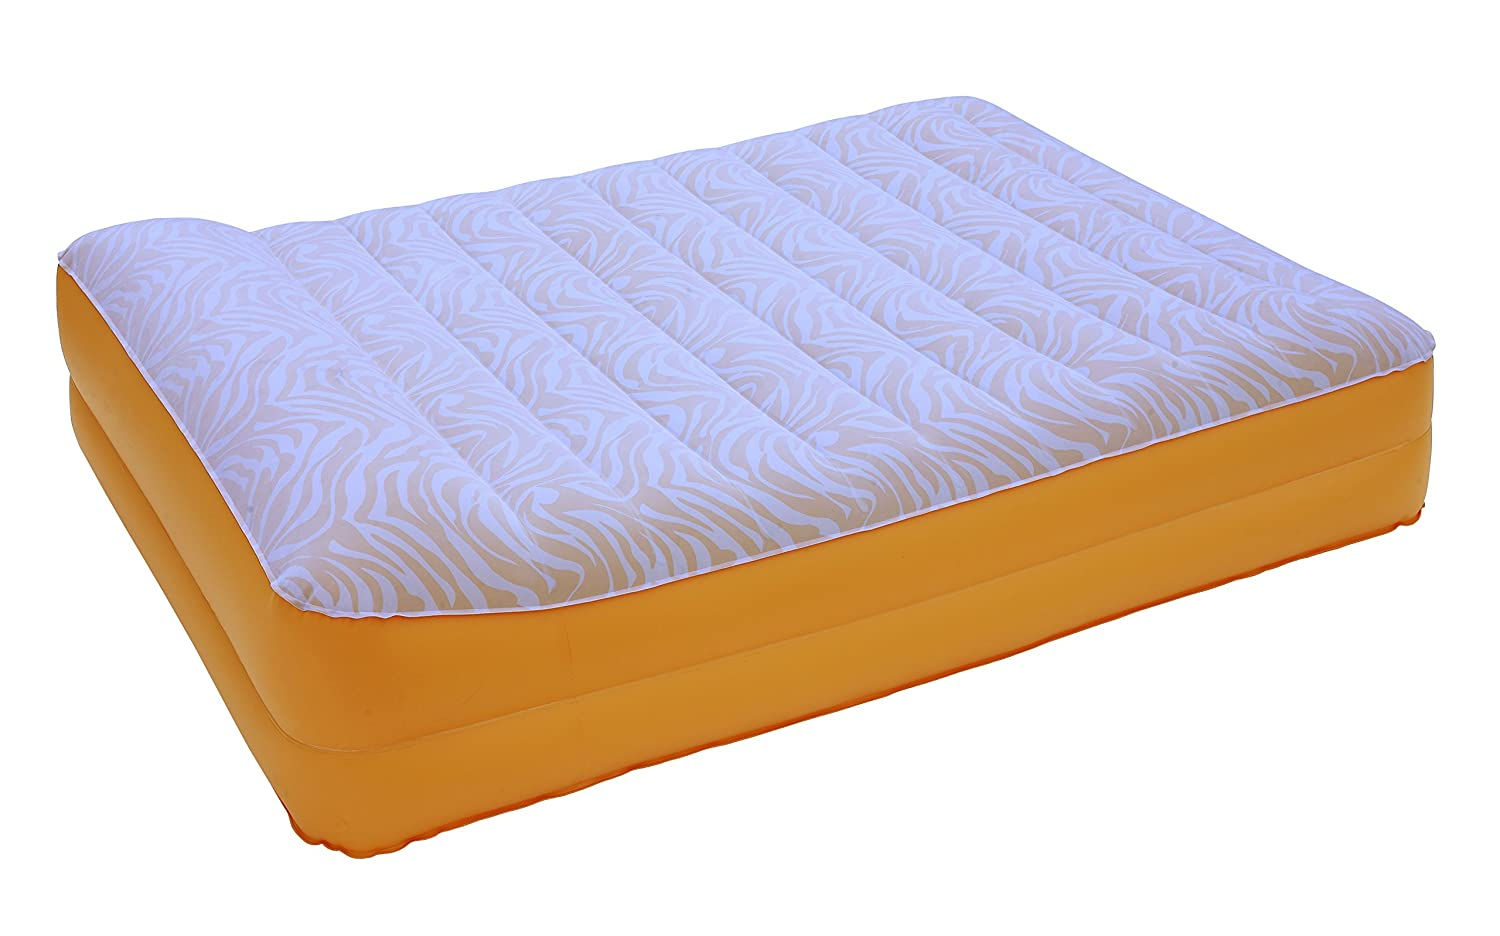 AirCloud Safari 14-Inch High Butterscotch Vanilla Safari Print Inflatable Air Bed, Full CSA US Corp PAB-501